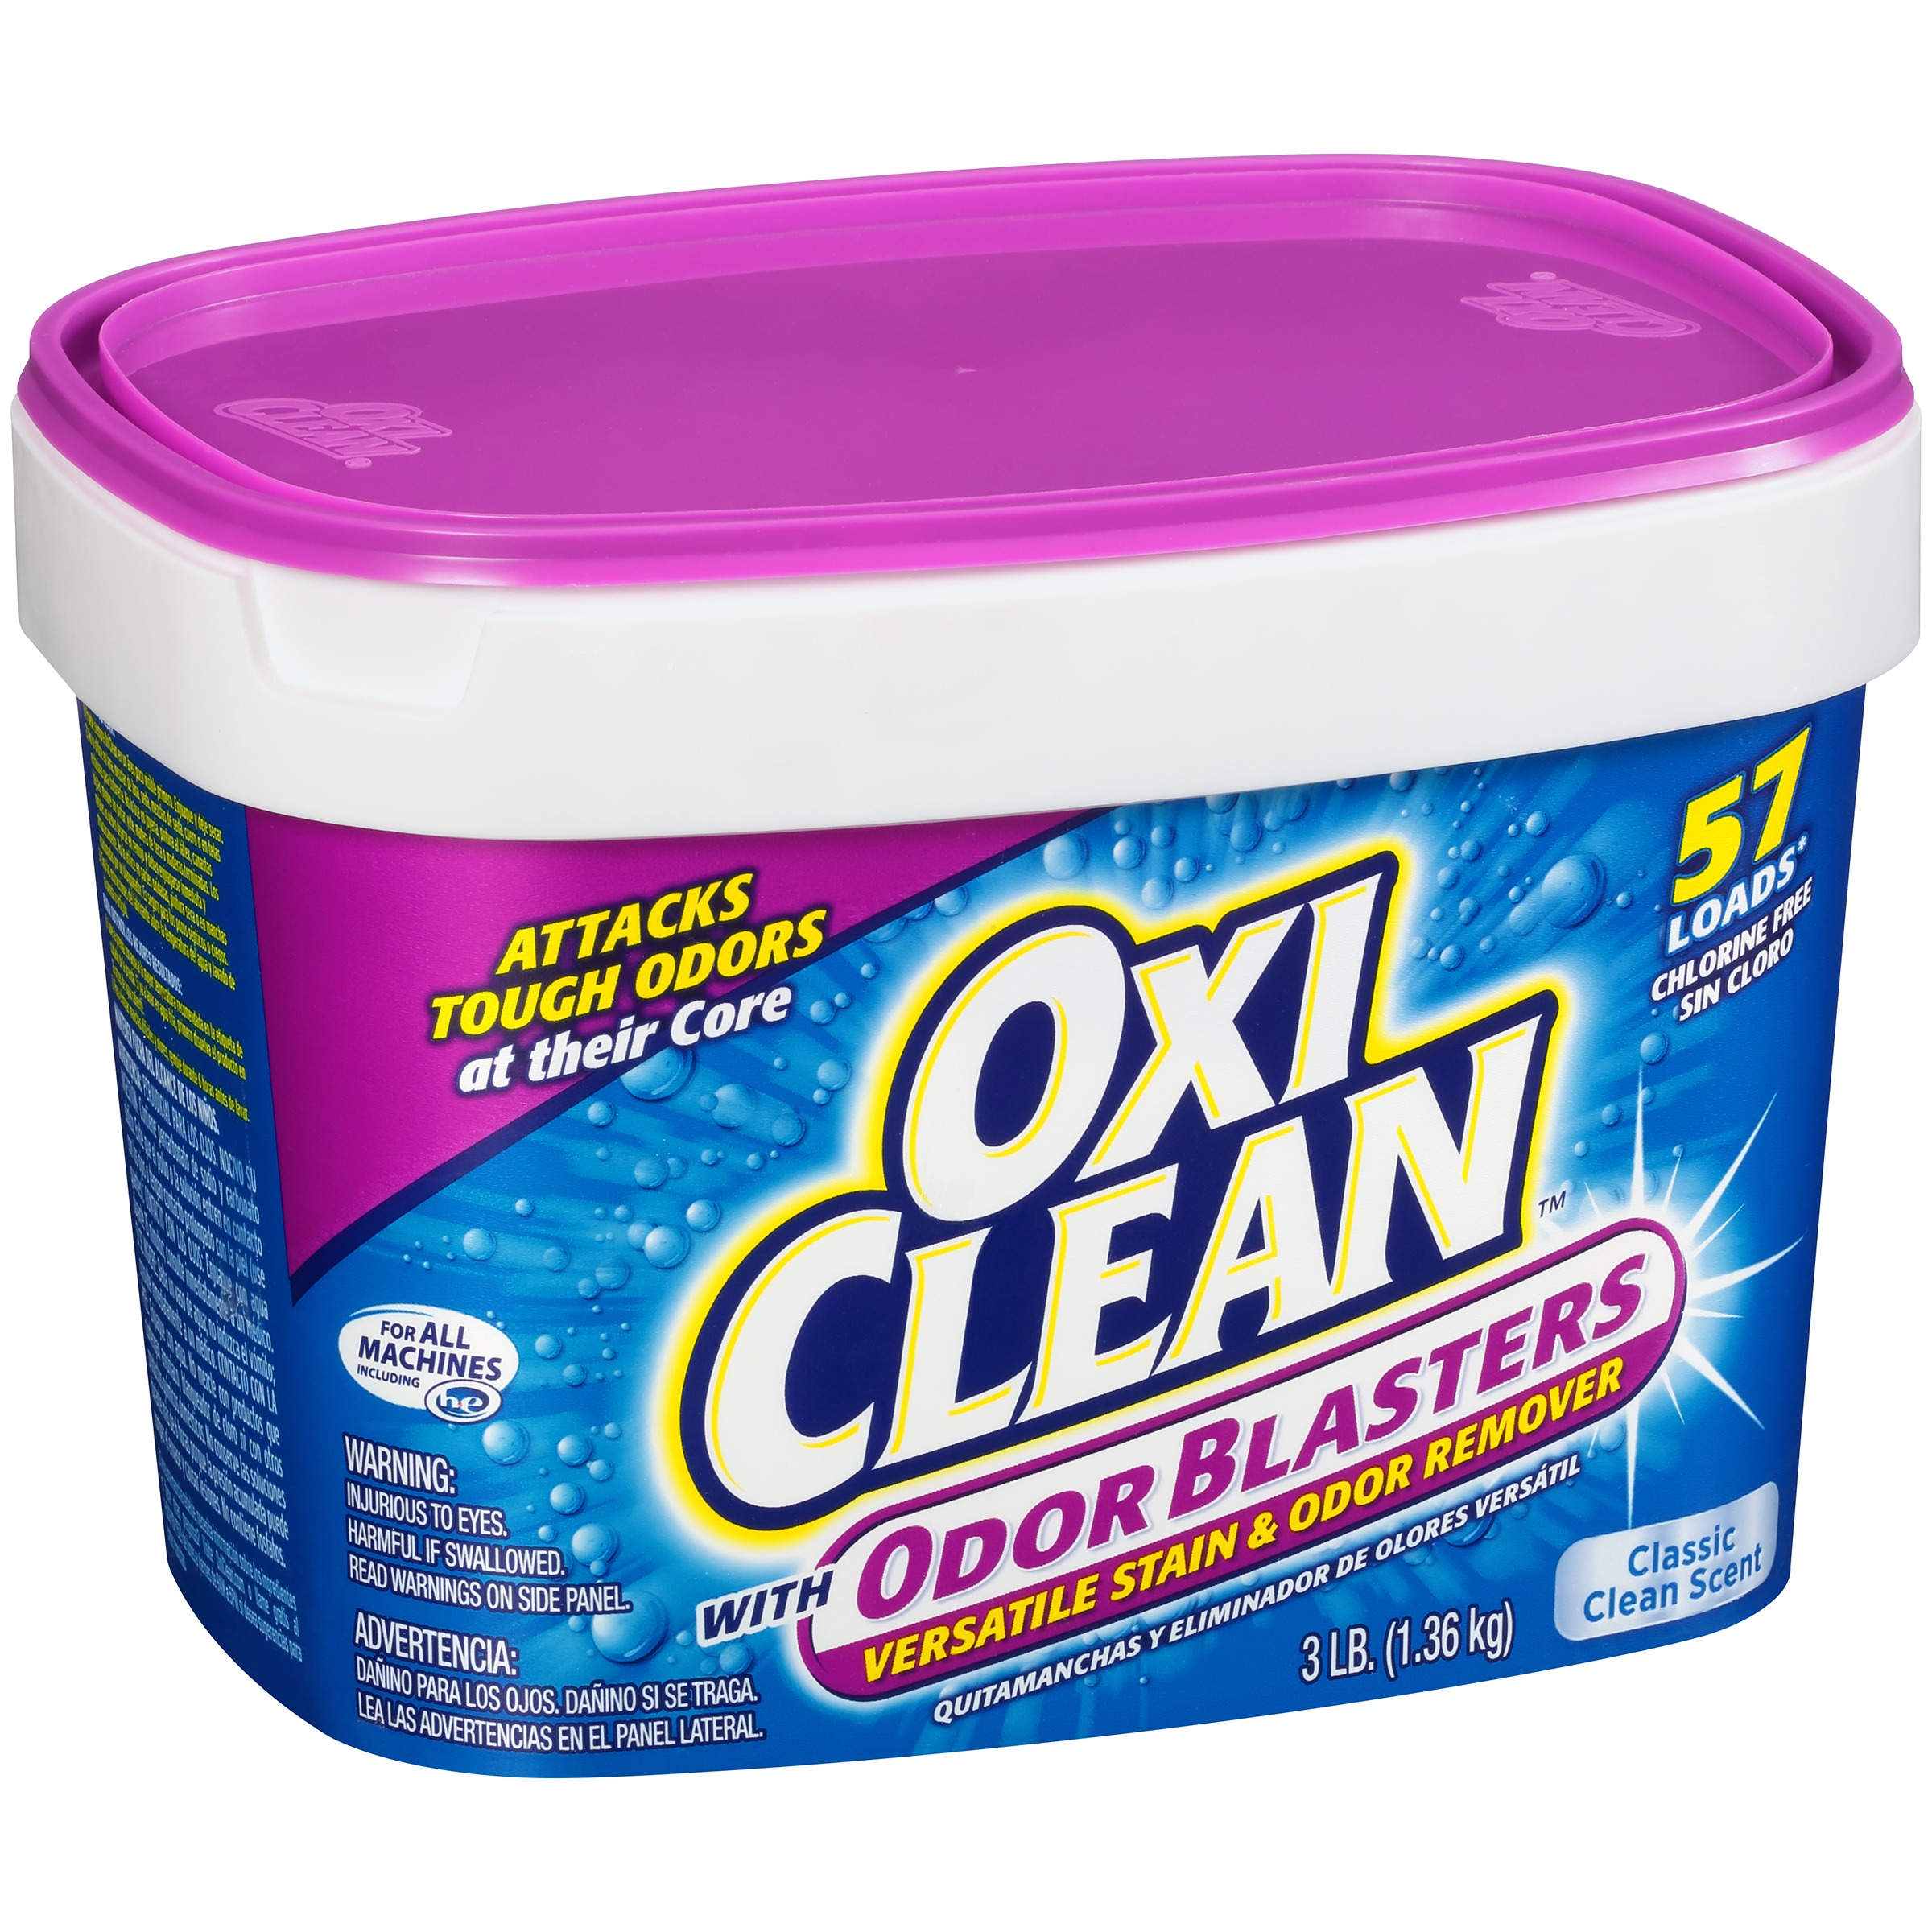 OxiClean Stain Remover With Odor Blasters, 48 Oz